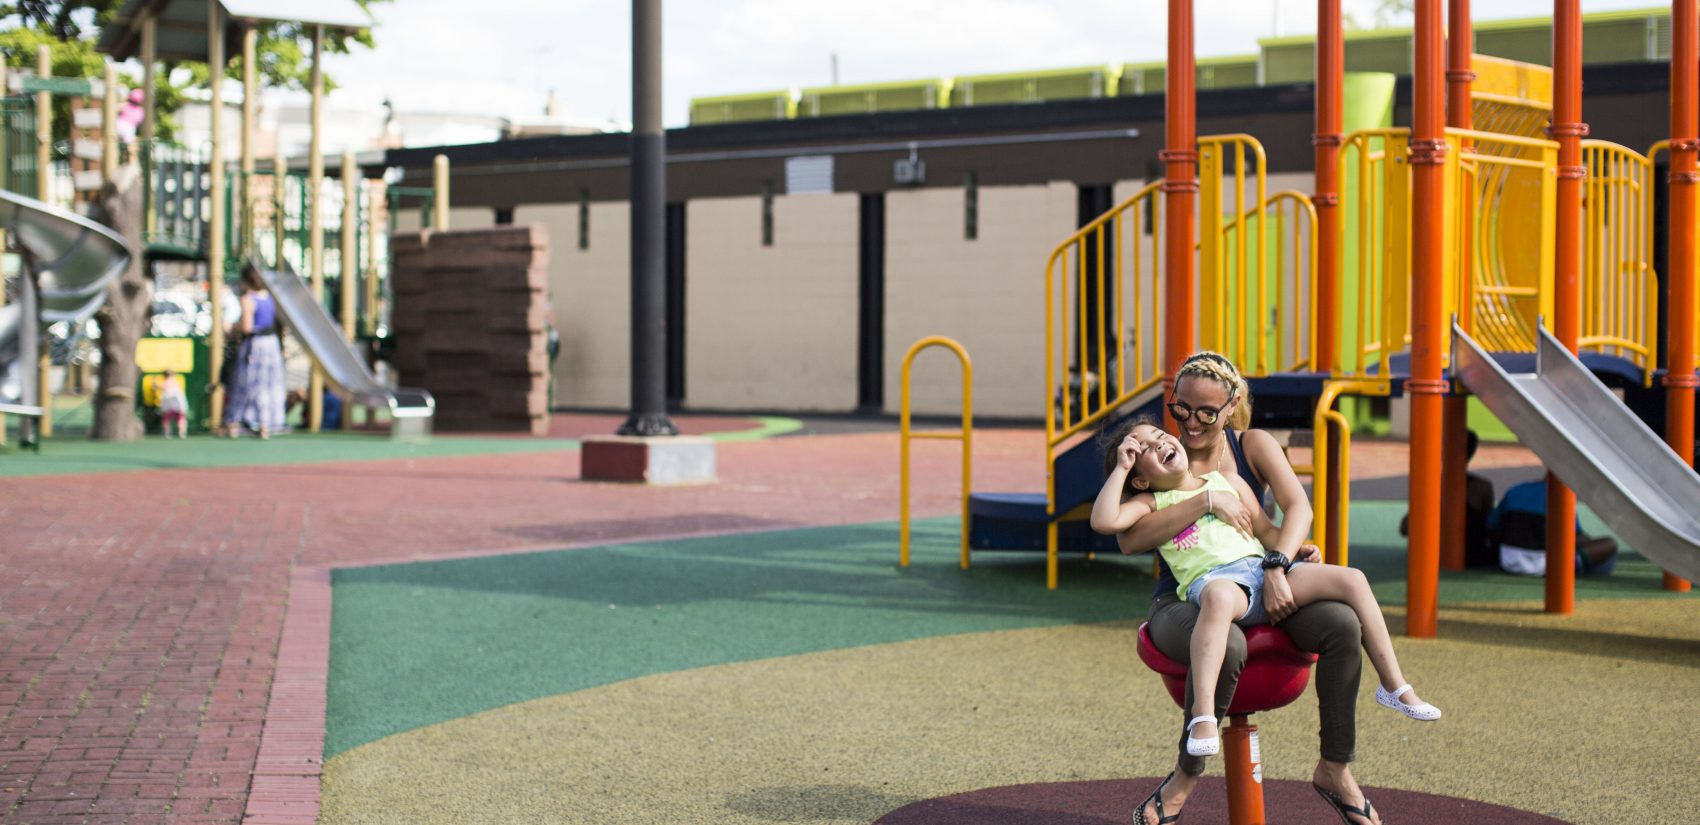 </b> Savannah Zayas and her daughter Layla play at Cione Playground in Kensington on June 29, 2016. Savannah doesn't take Layla to parks in her own neighborhood. (Jessica Kourkounis)